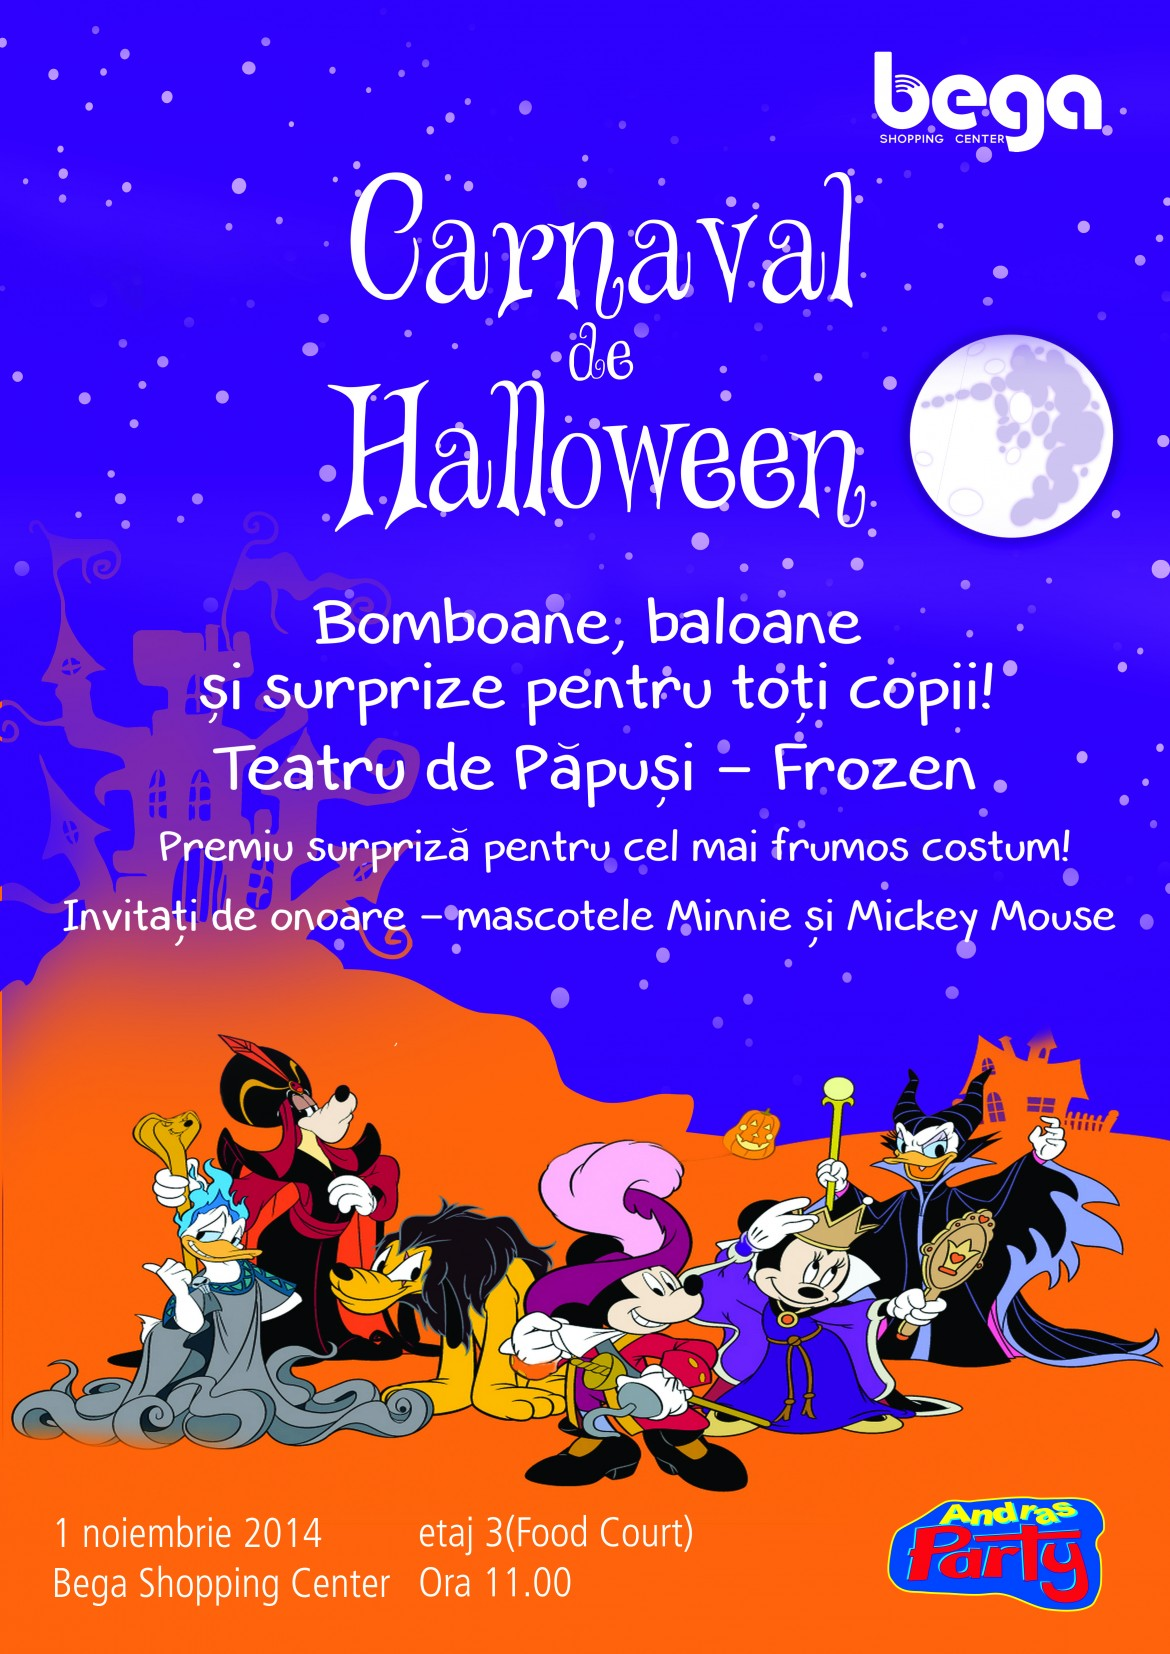 Carnaval de halloween la Bega Shopping Center